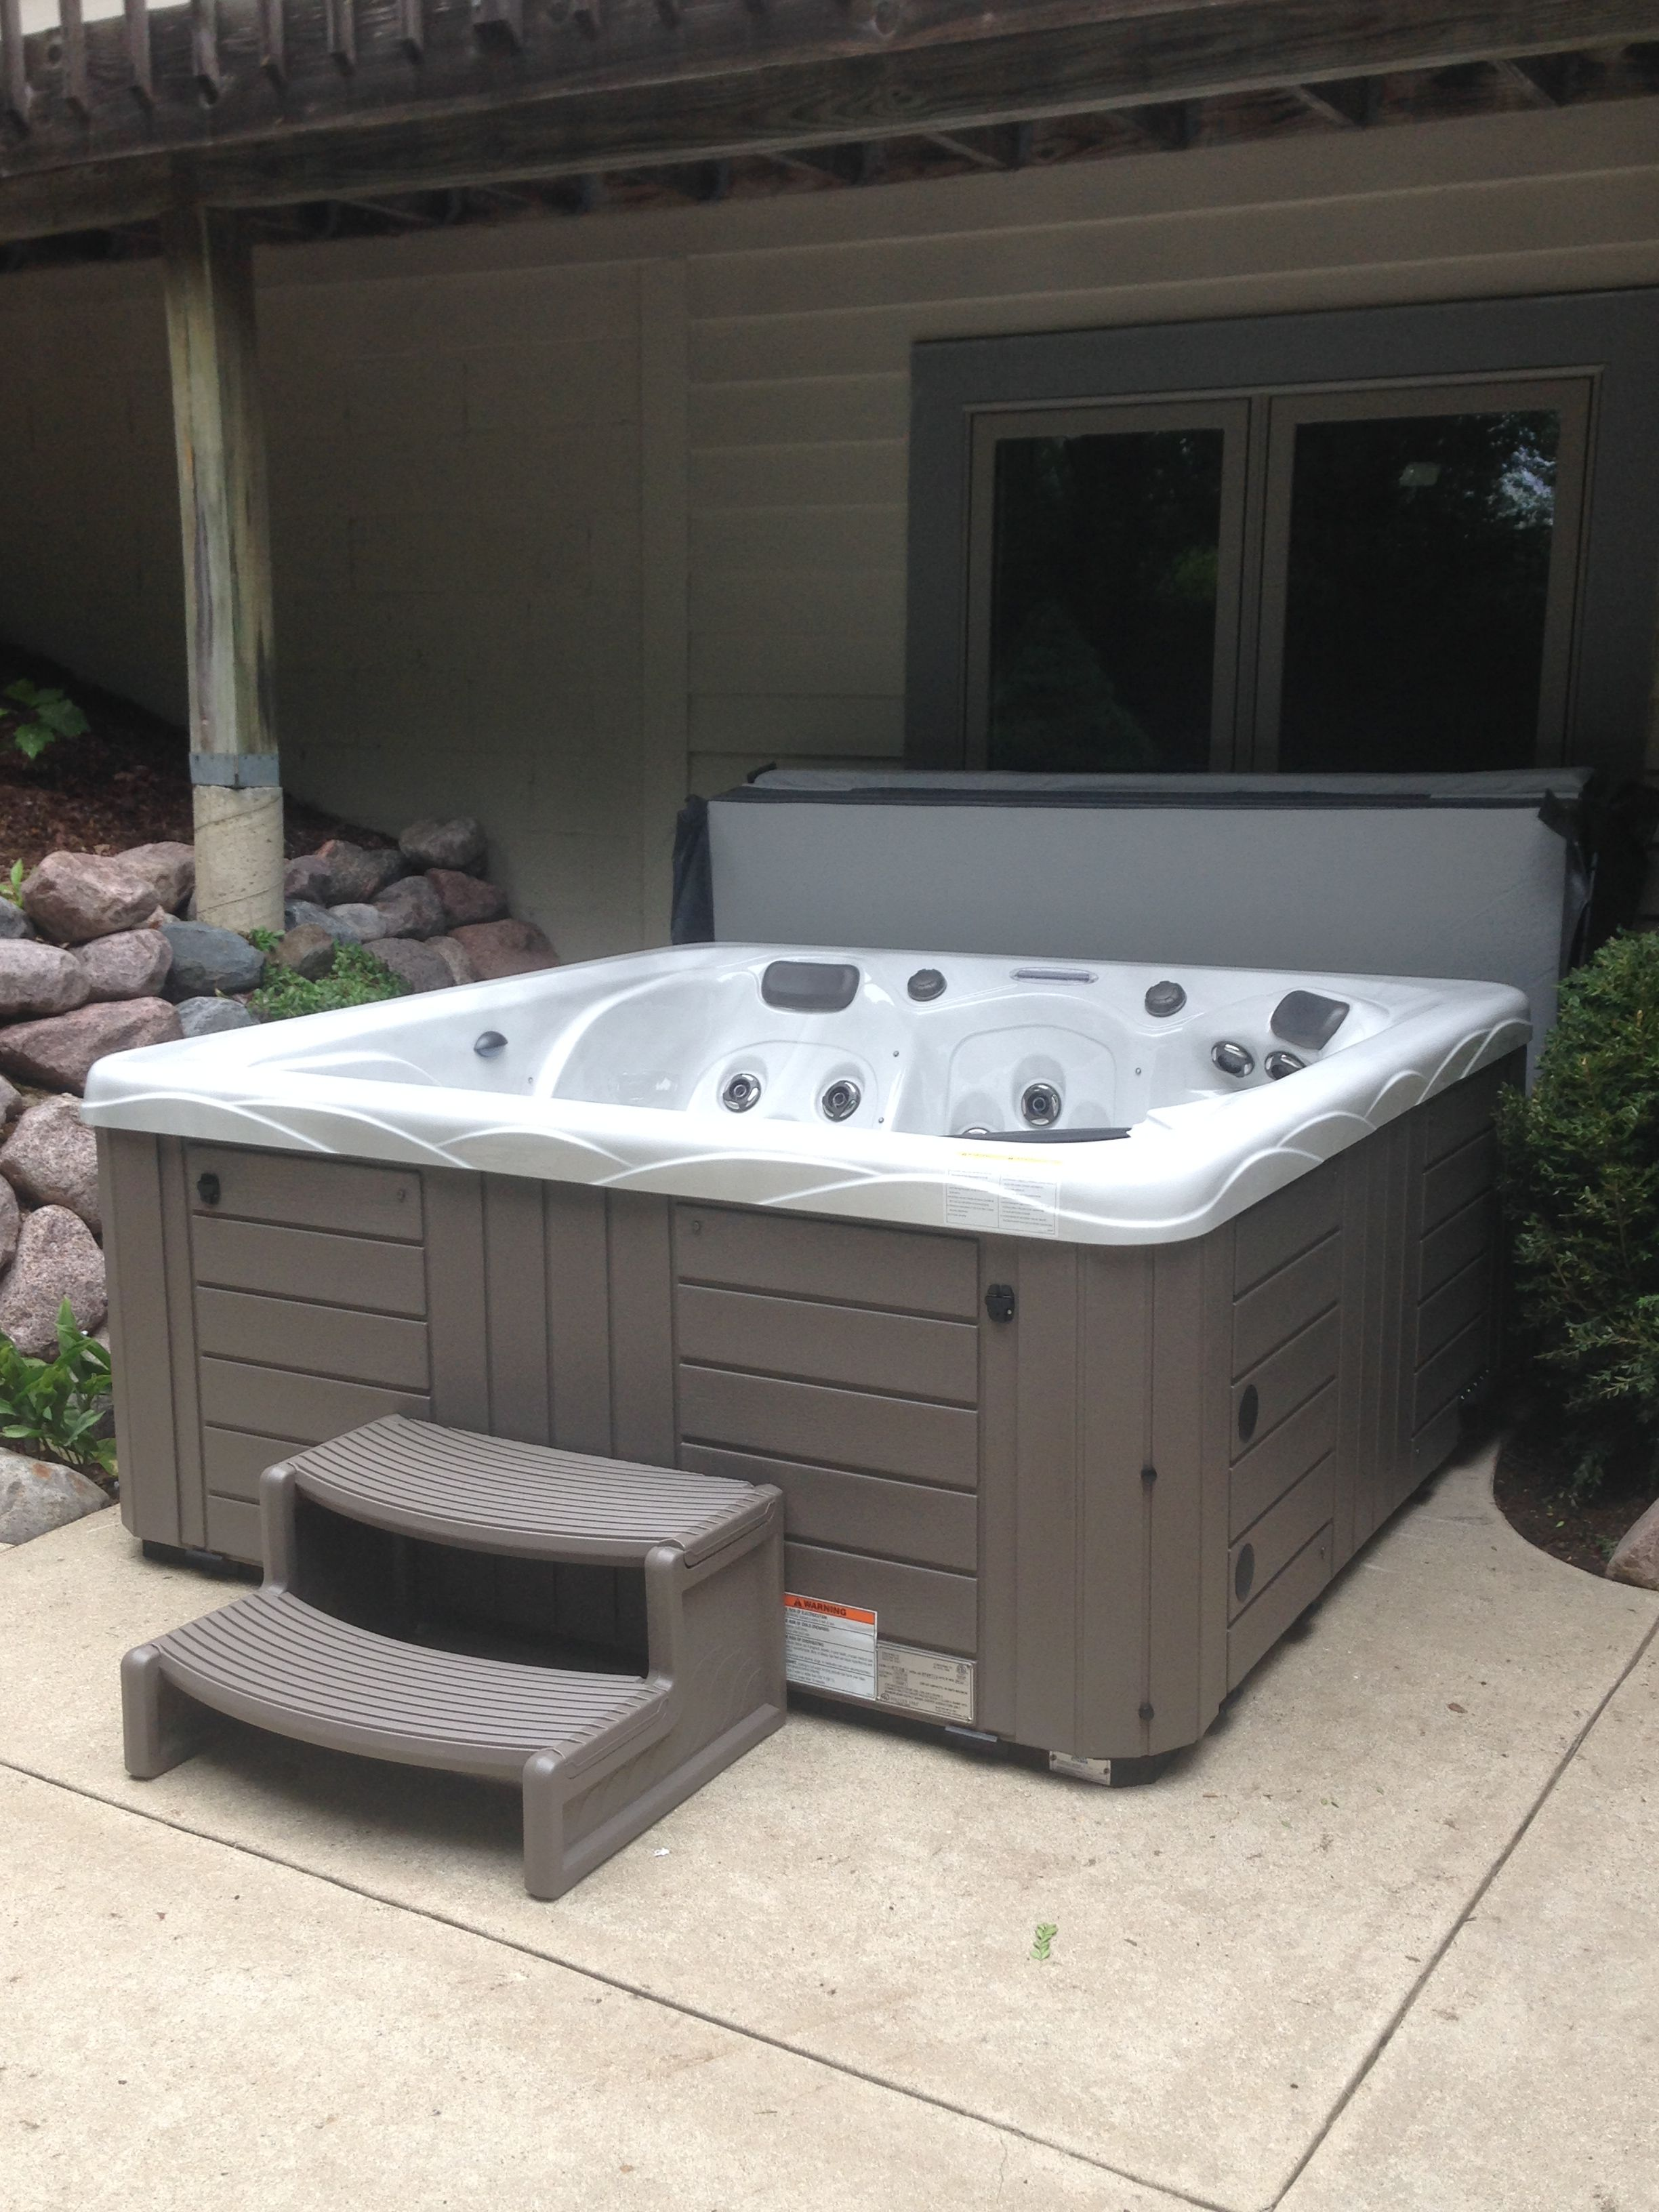 small resolution of here is a master spas twilight series installed on a concrete slab under the deck